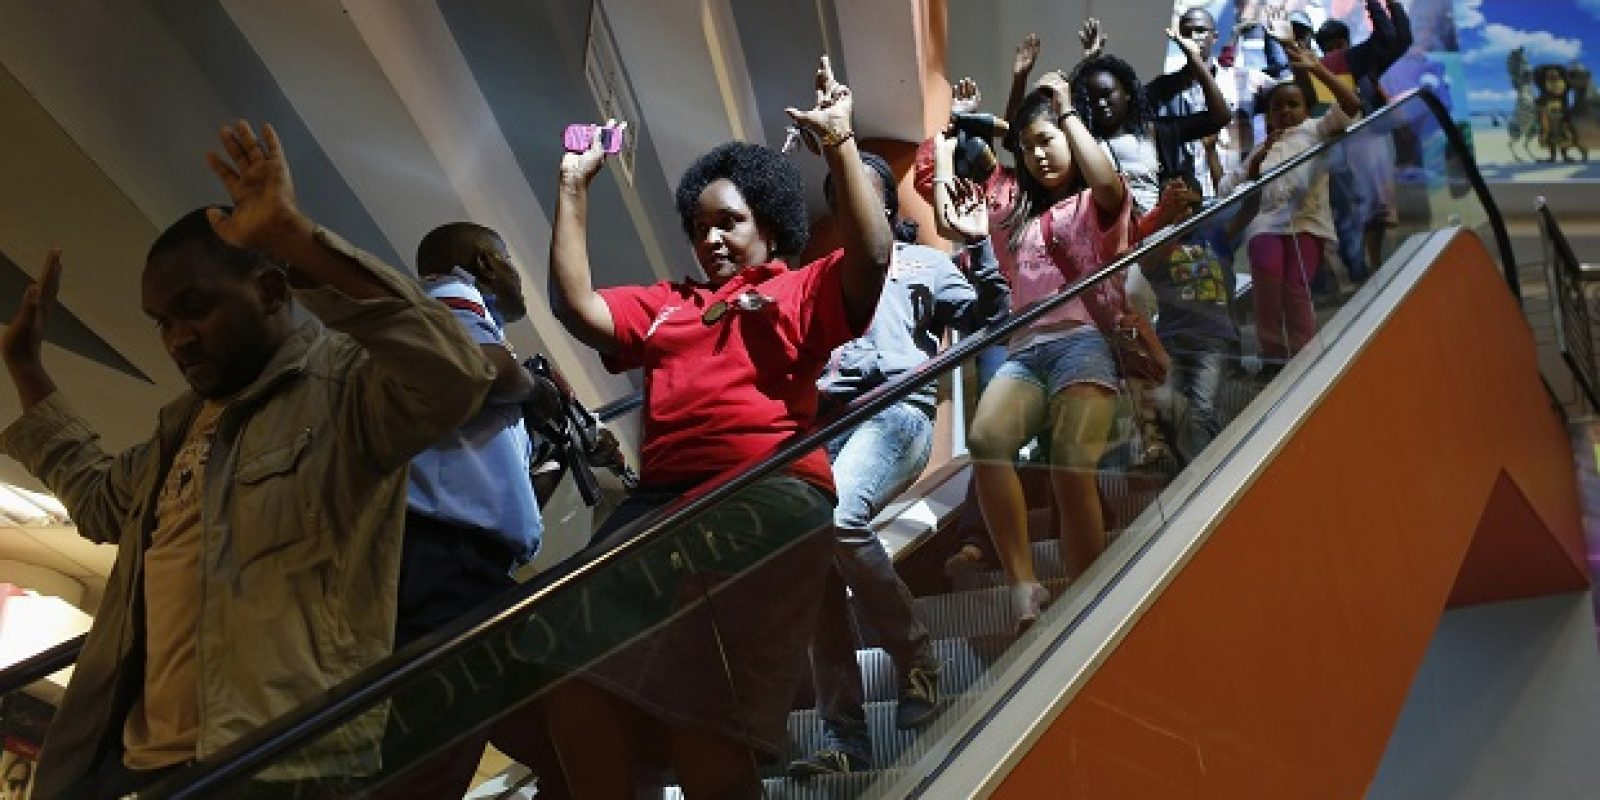 Civilians escape an area at the Westgate Shopping Centre in Nairobi. Imagen Por: Civilians escape an area at the Westgate Shopping Centre in Nairobi September 21, 2013. Gunmen stormed the shopping mall in Nairobi on Saturday killing at least 20 people in what Kenya